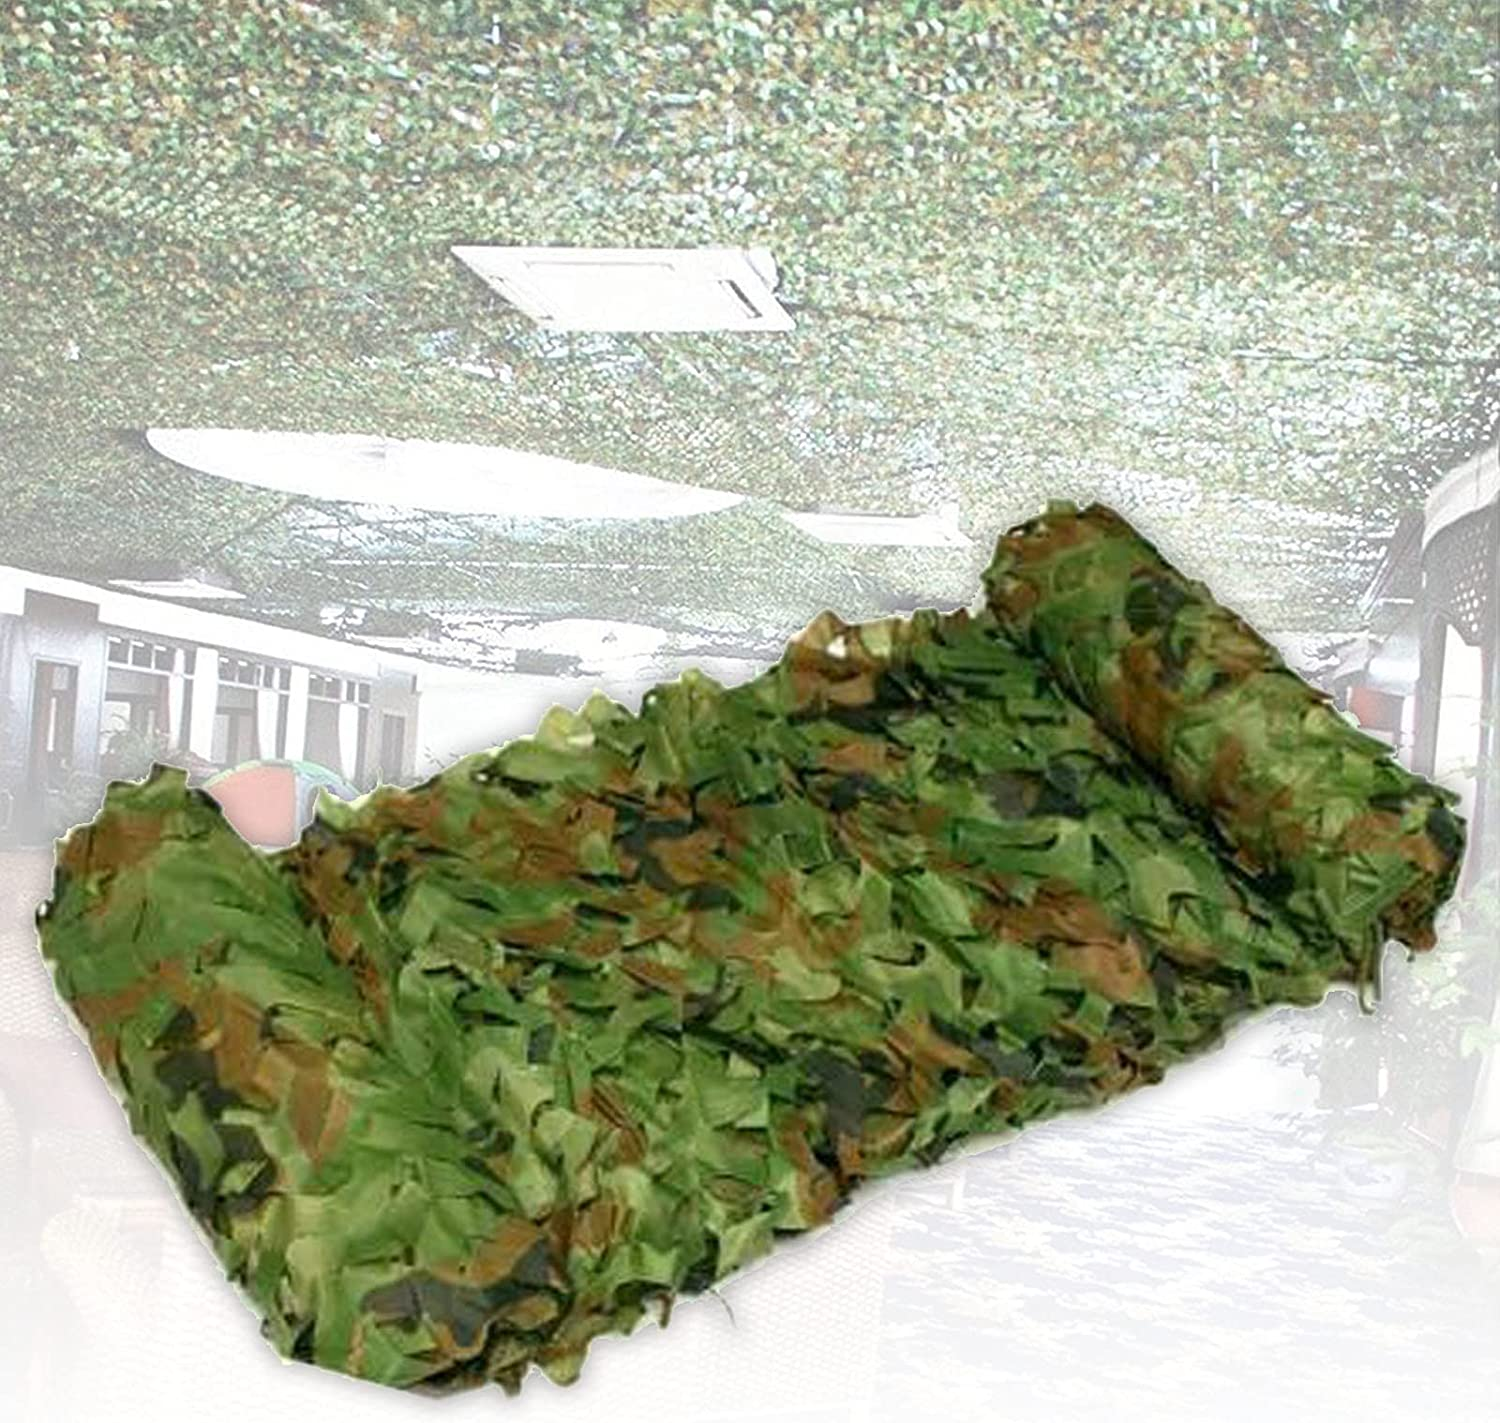 ZCBHSD Camo Netting Green Attention brand Camouflage Net Home for Same day shipping Decor Sunshade